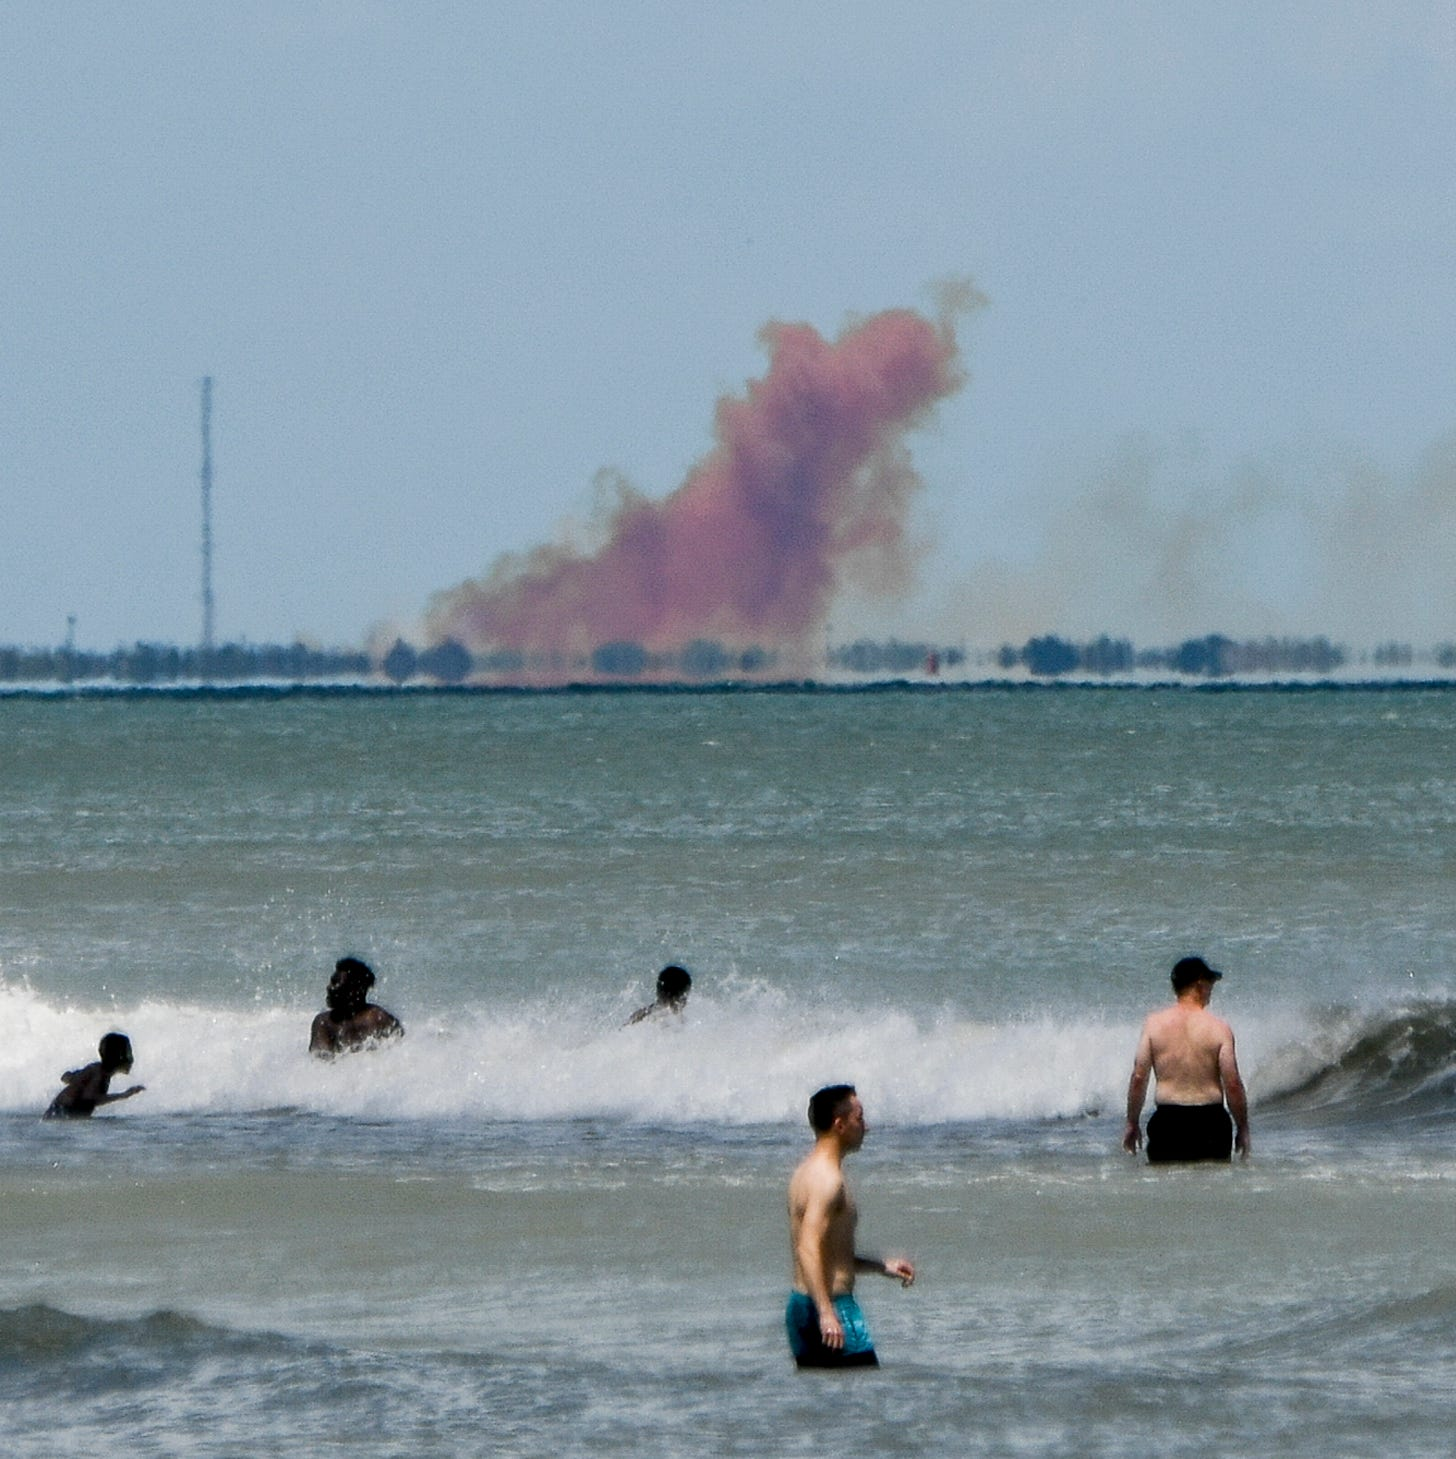 SpaceX's Crew Dragon fire sent hazardous chemical compounds into the environment